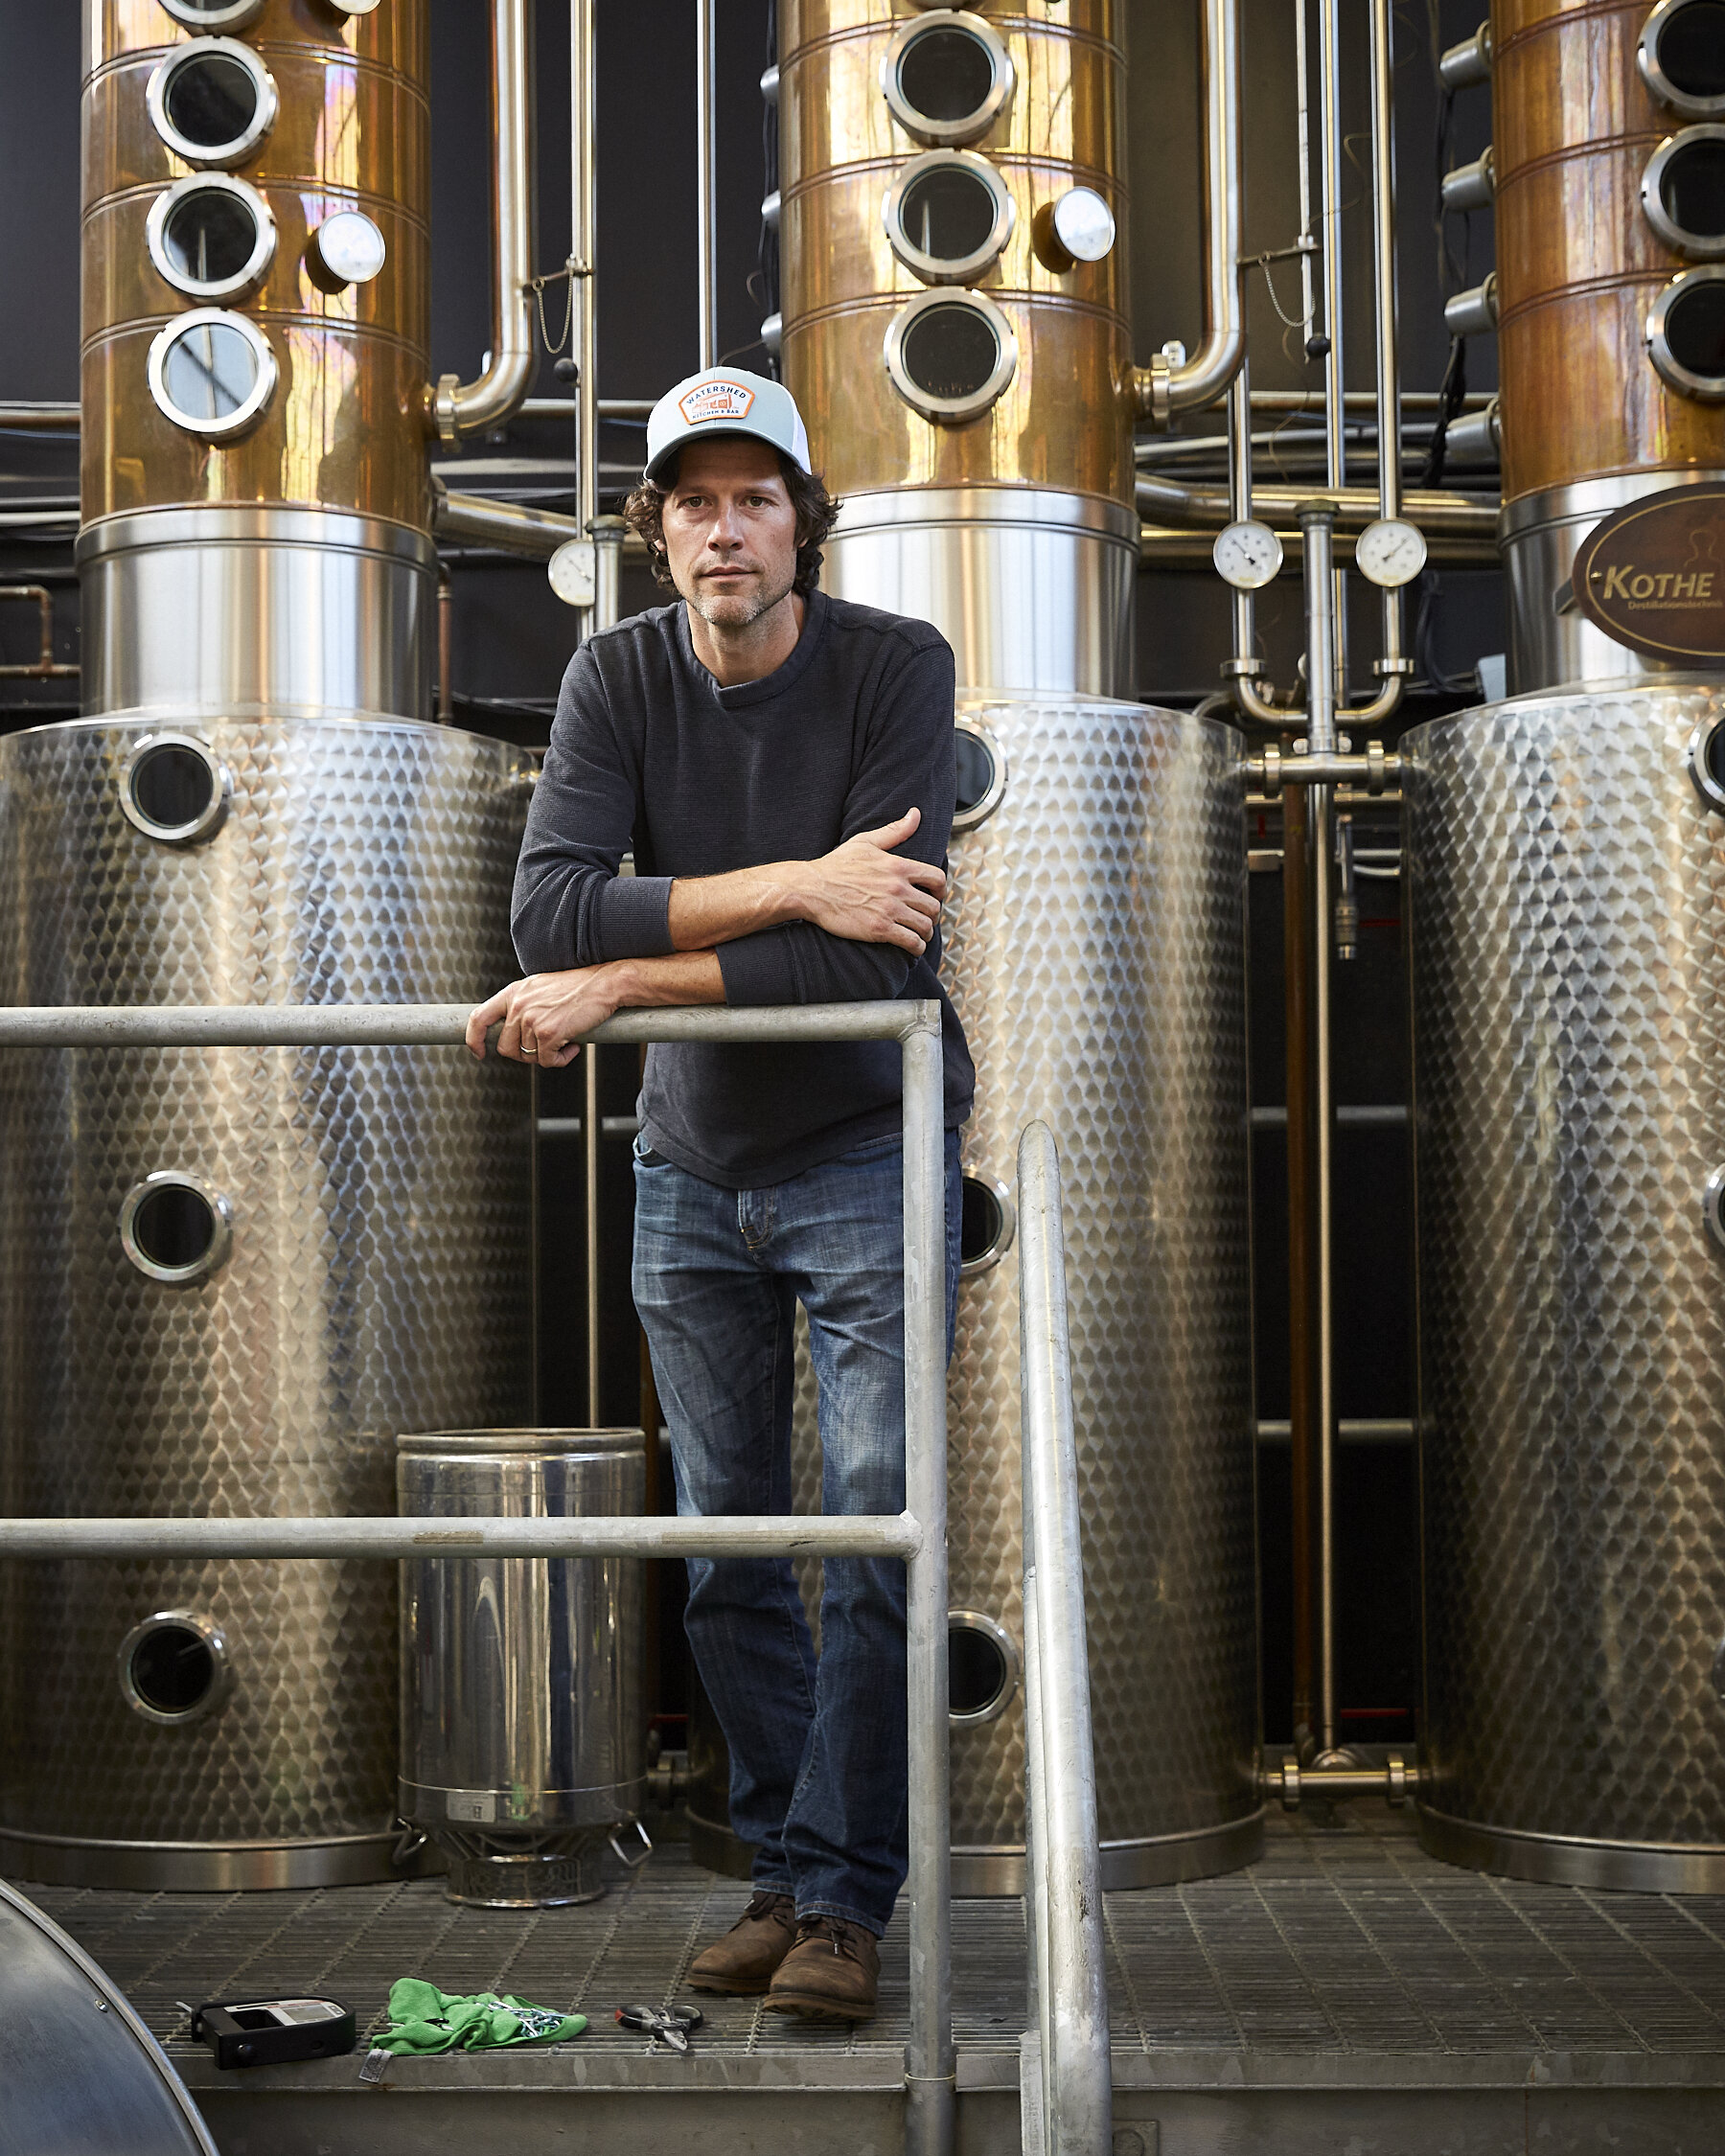 Greg Lehman, Co-Founder of Watershed Distillery. Photographed for The New York Times.